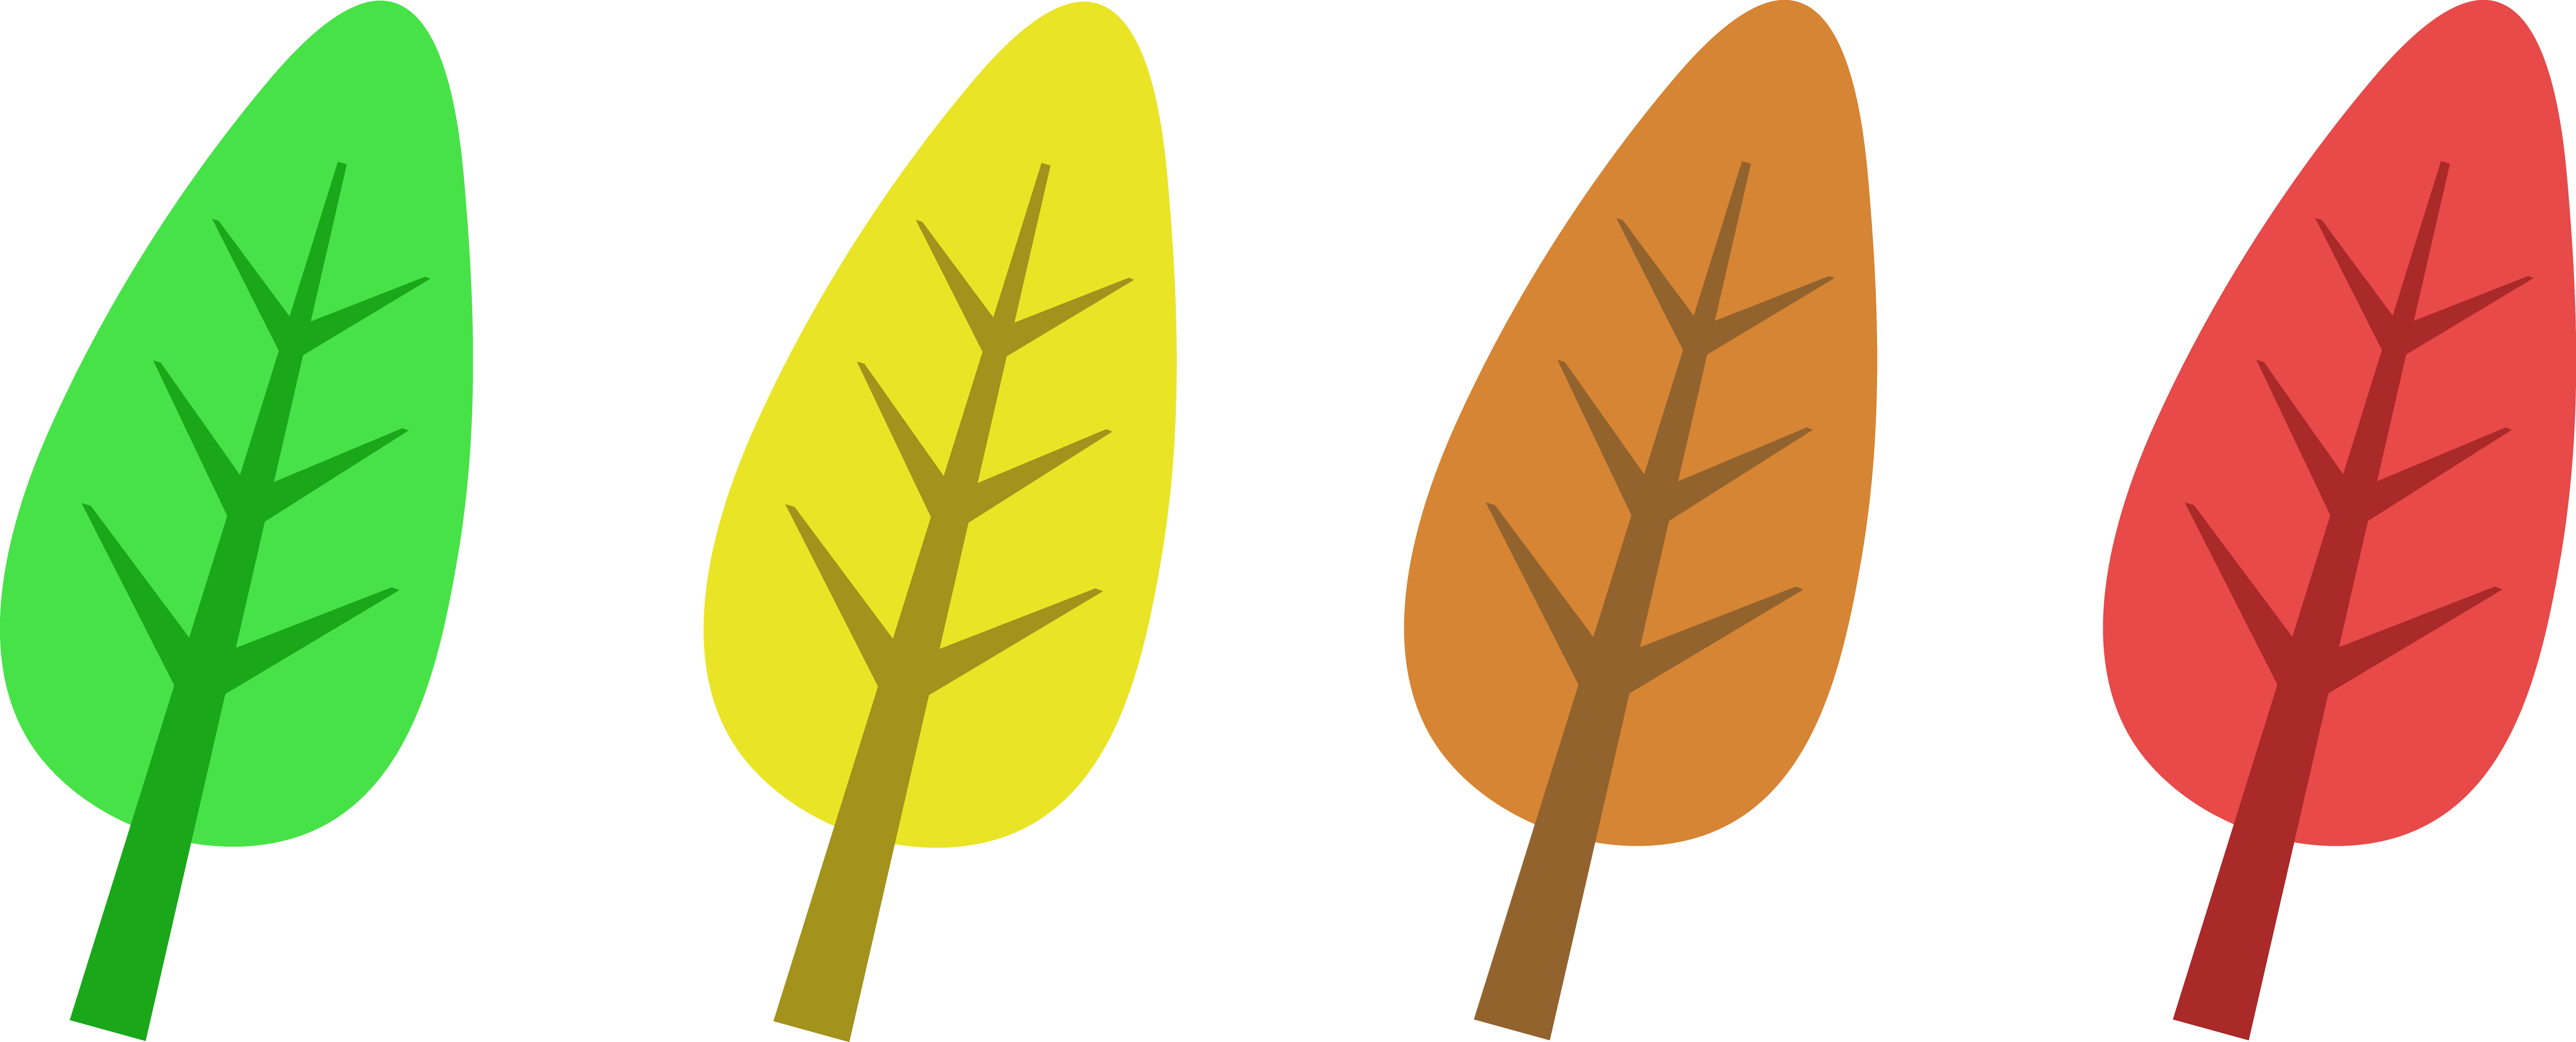 Leaf Clipart-leaf clipart-11